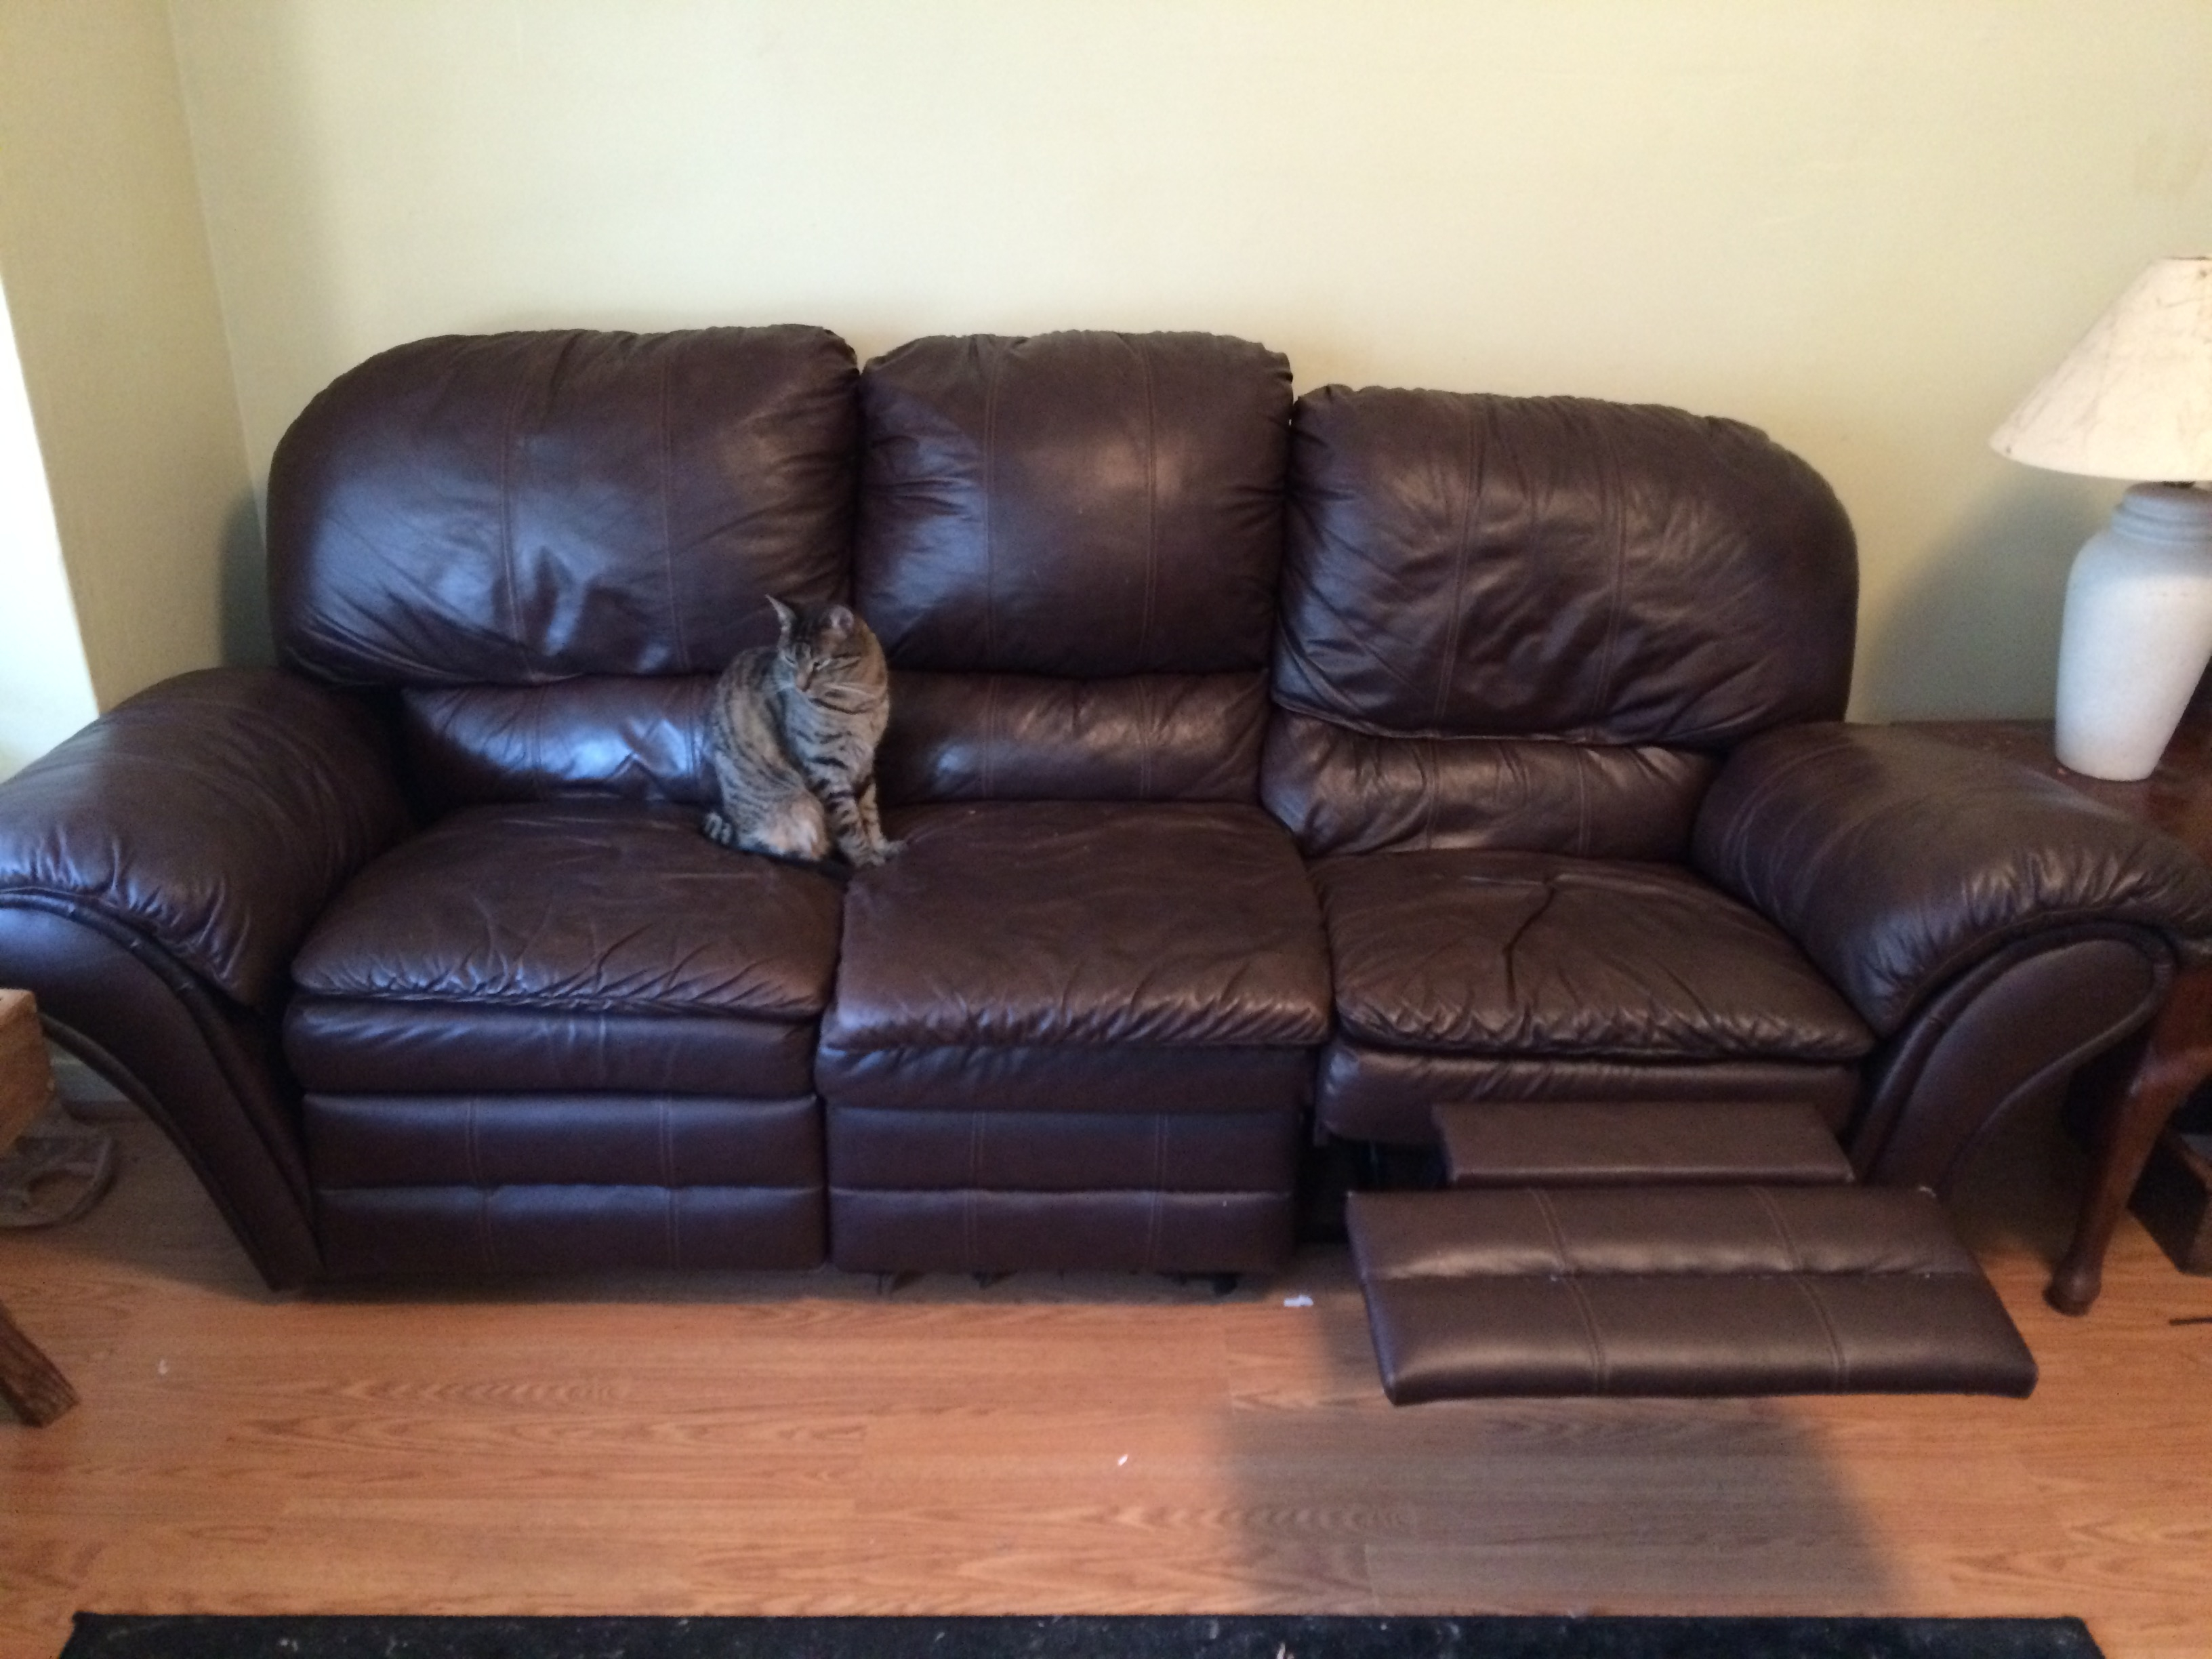 Popular Photo of Craigslist Leather Sofa